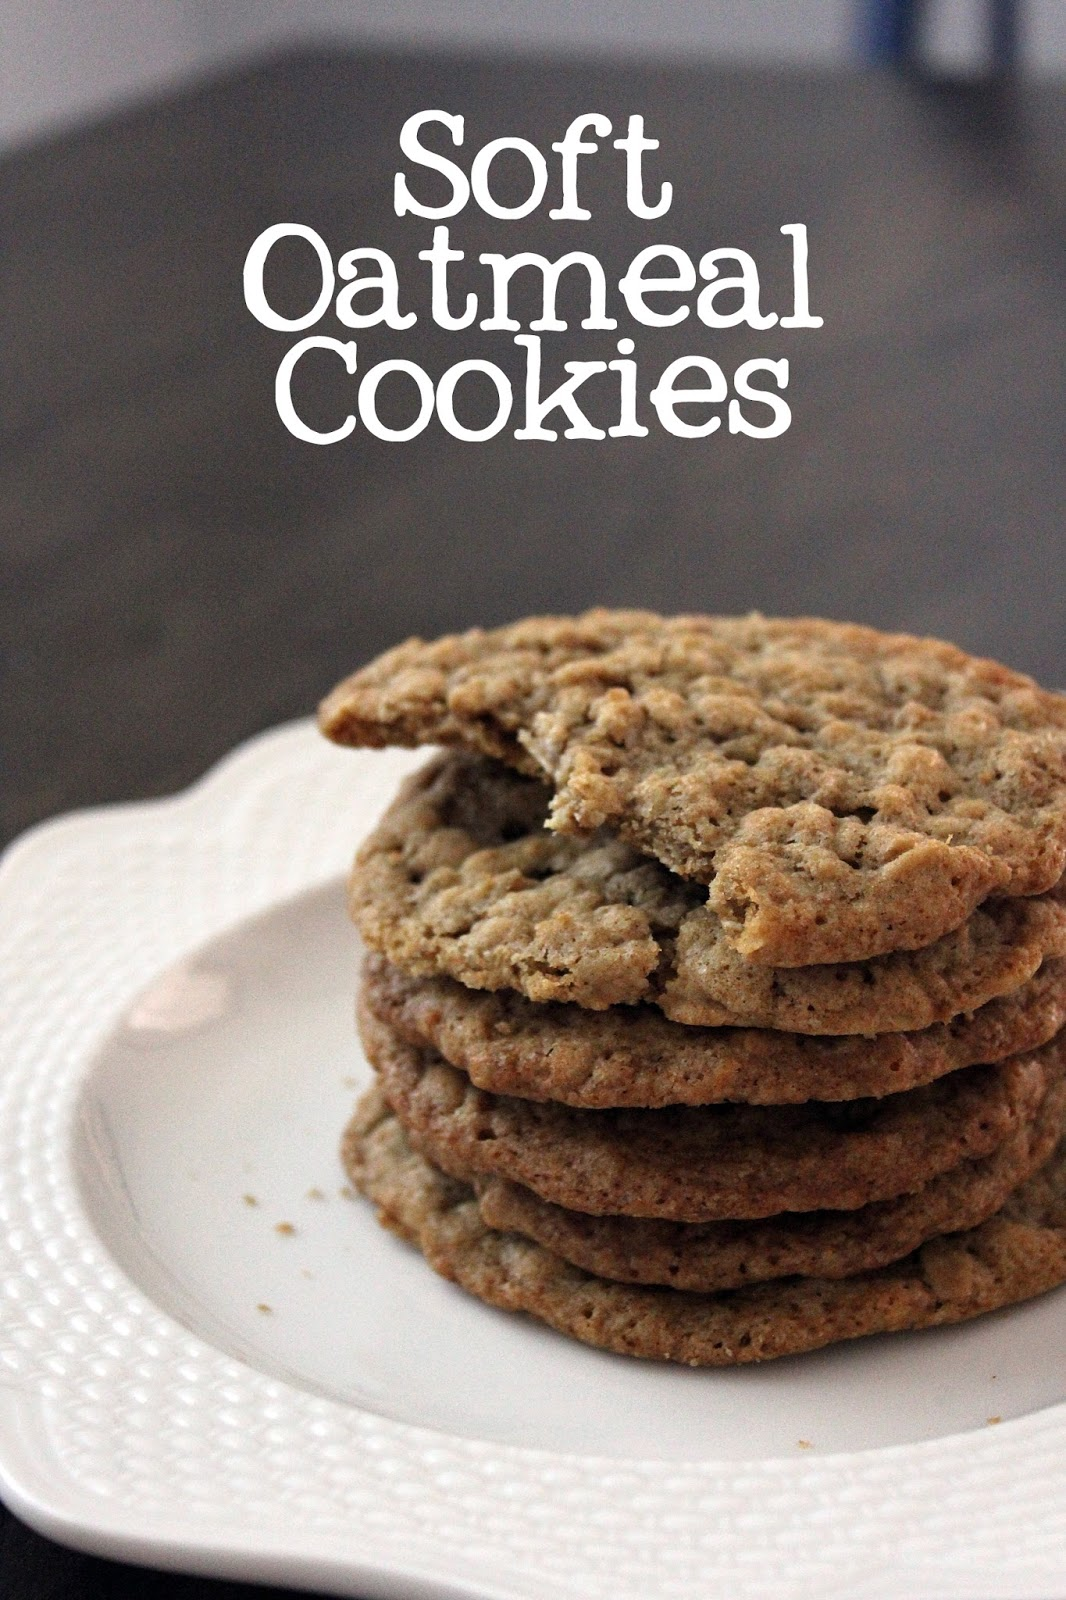 Recipe for Soft Oatmeal Cookies by freshfromthe.com